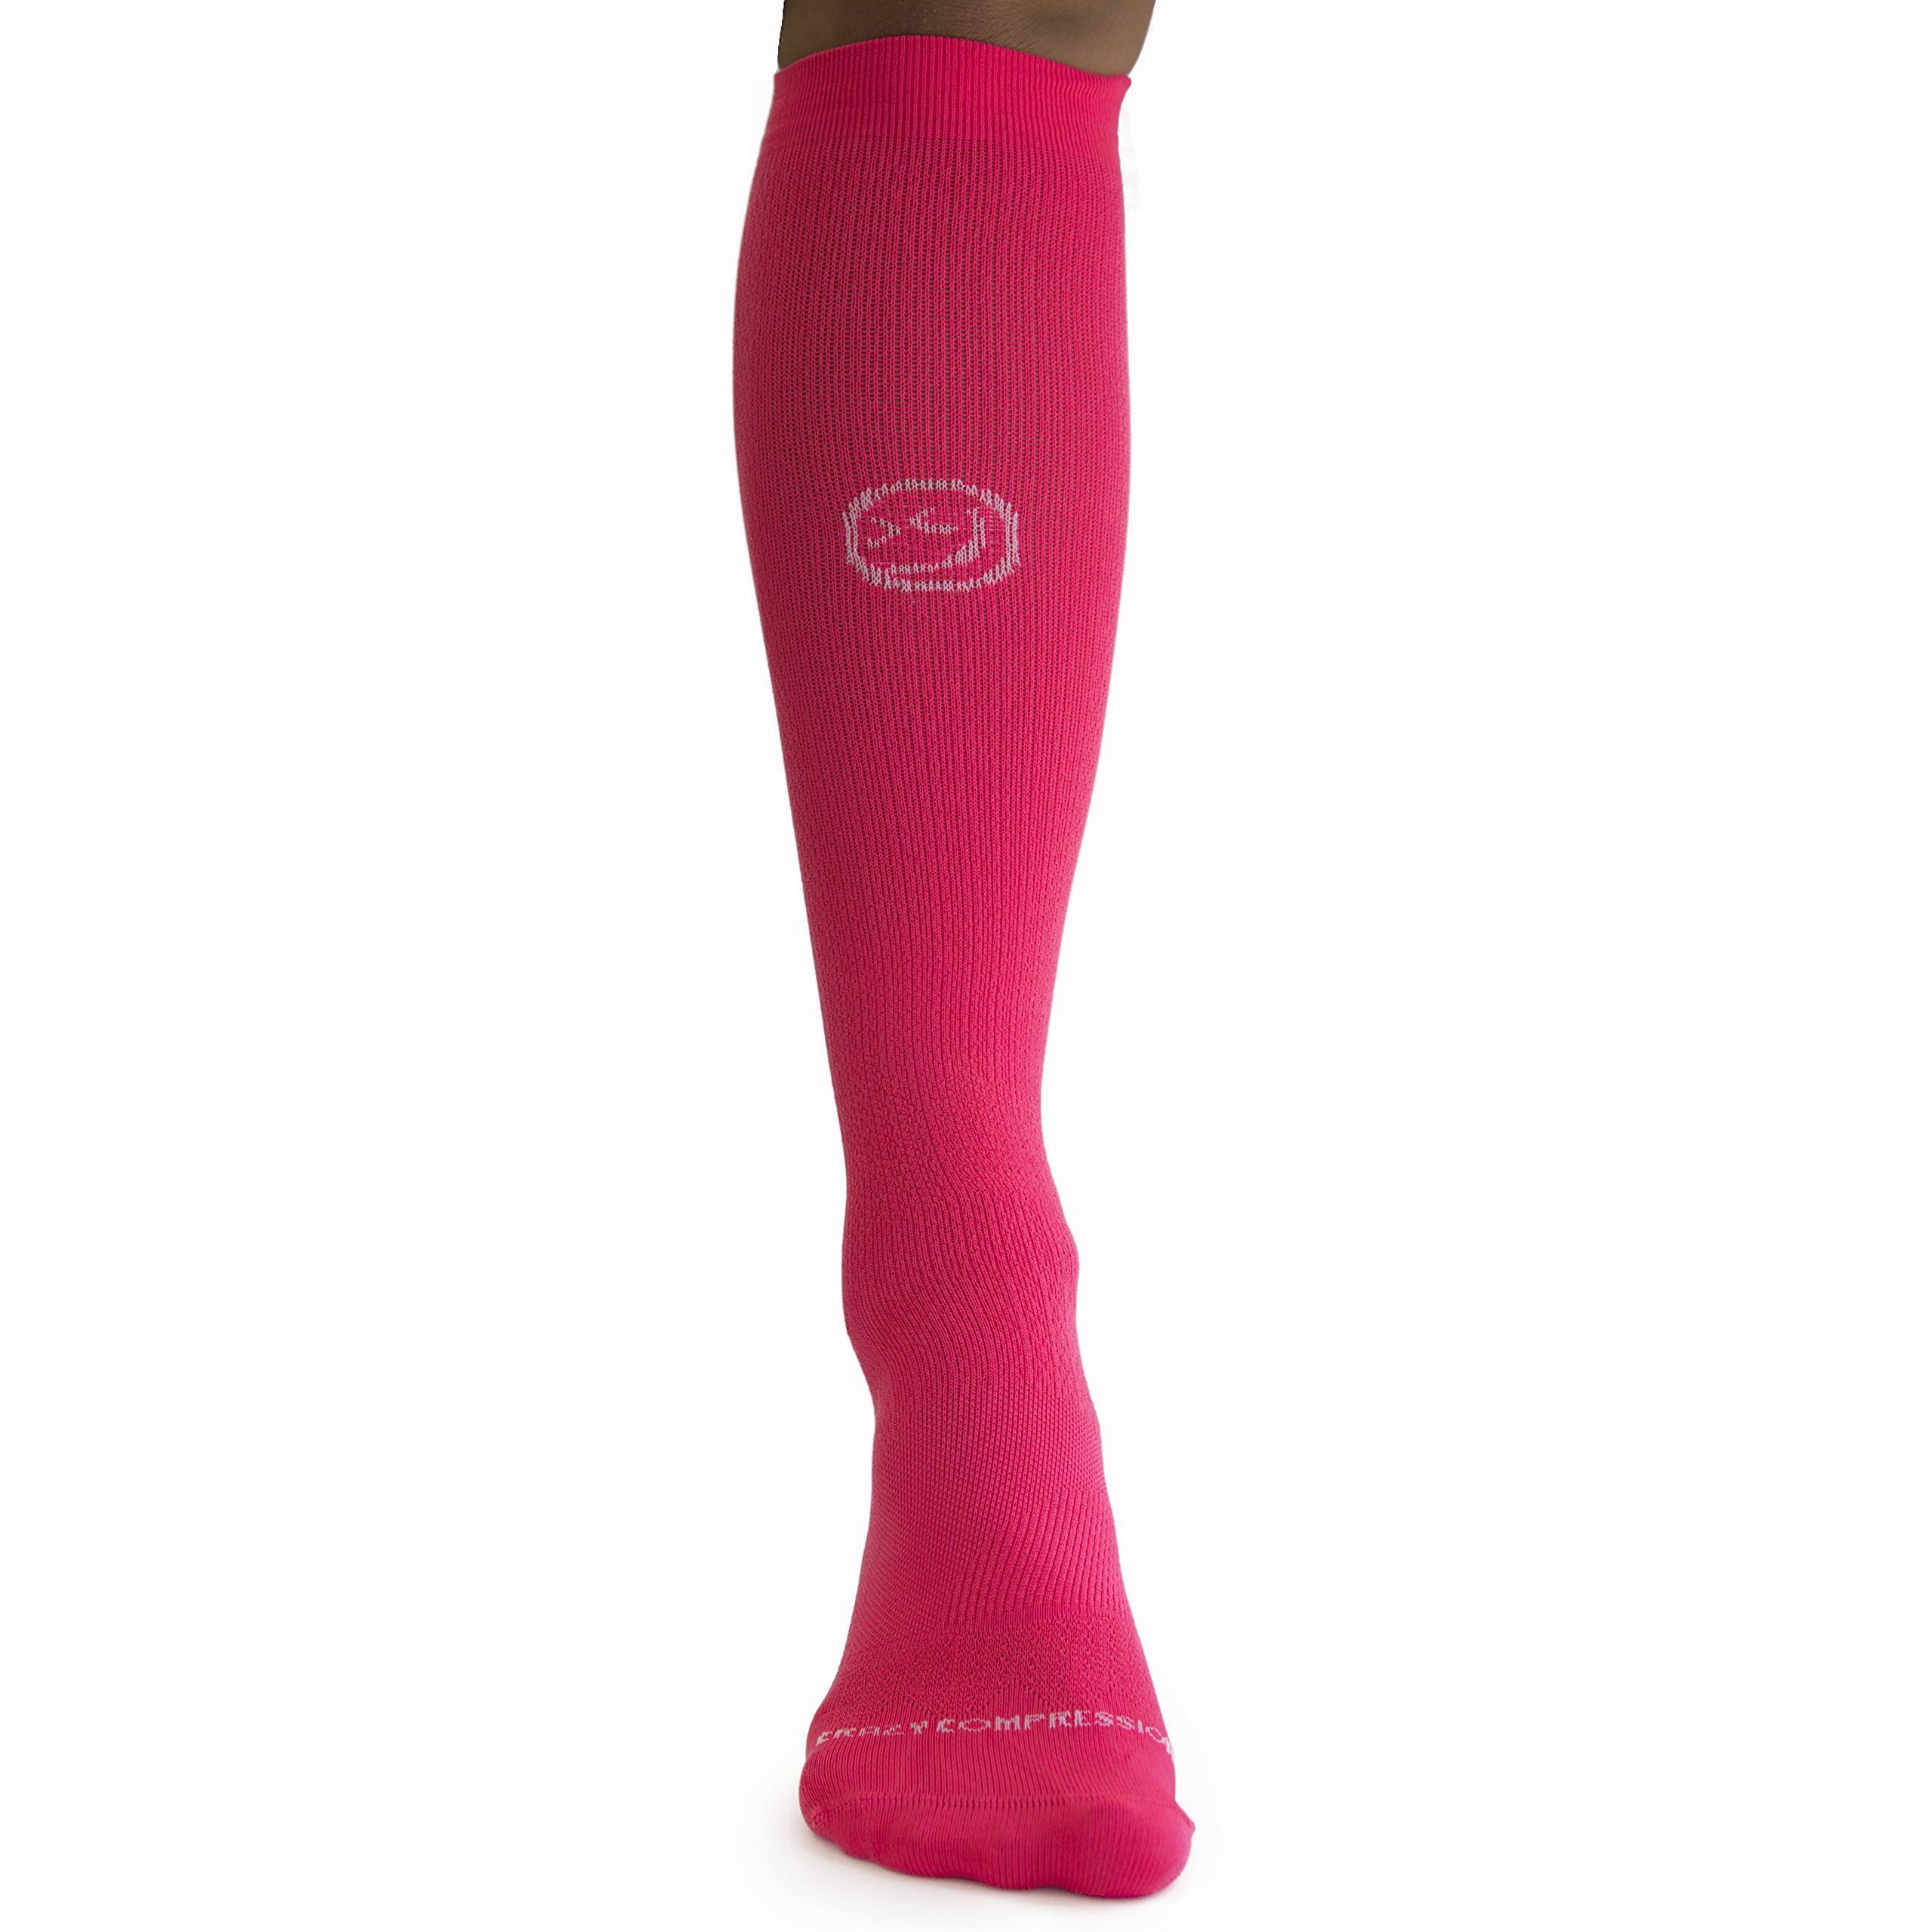 da253bef35 Crazy Compression OTC Solid Compression Socks XS Coral -- Check out this  great product. (This is an affiliate link) #CompressionSocksGallery